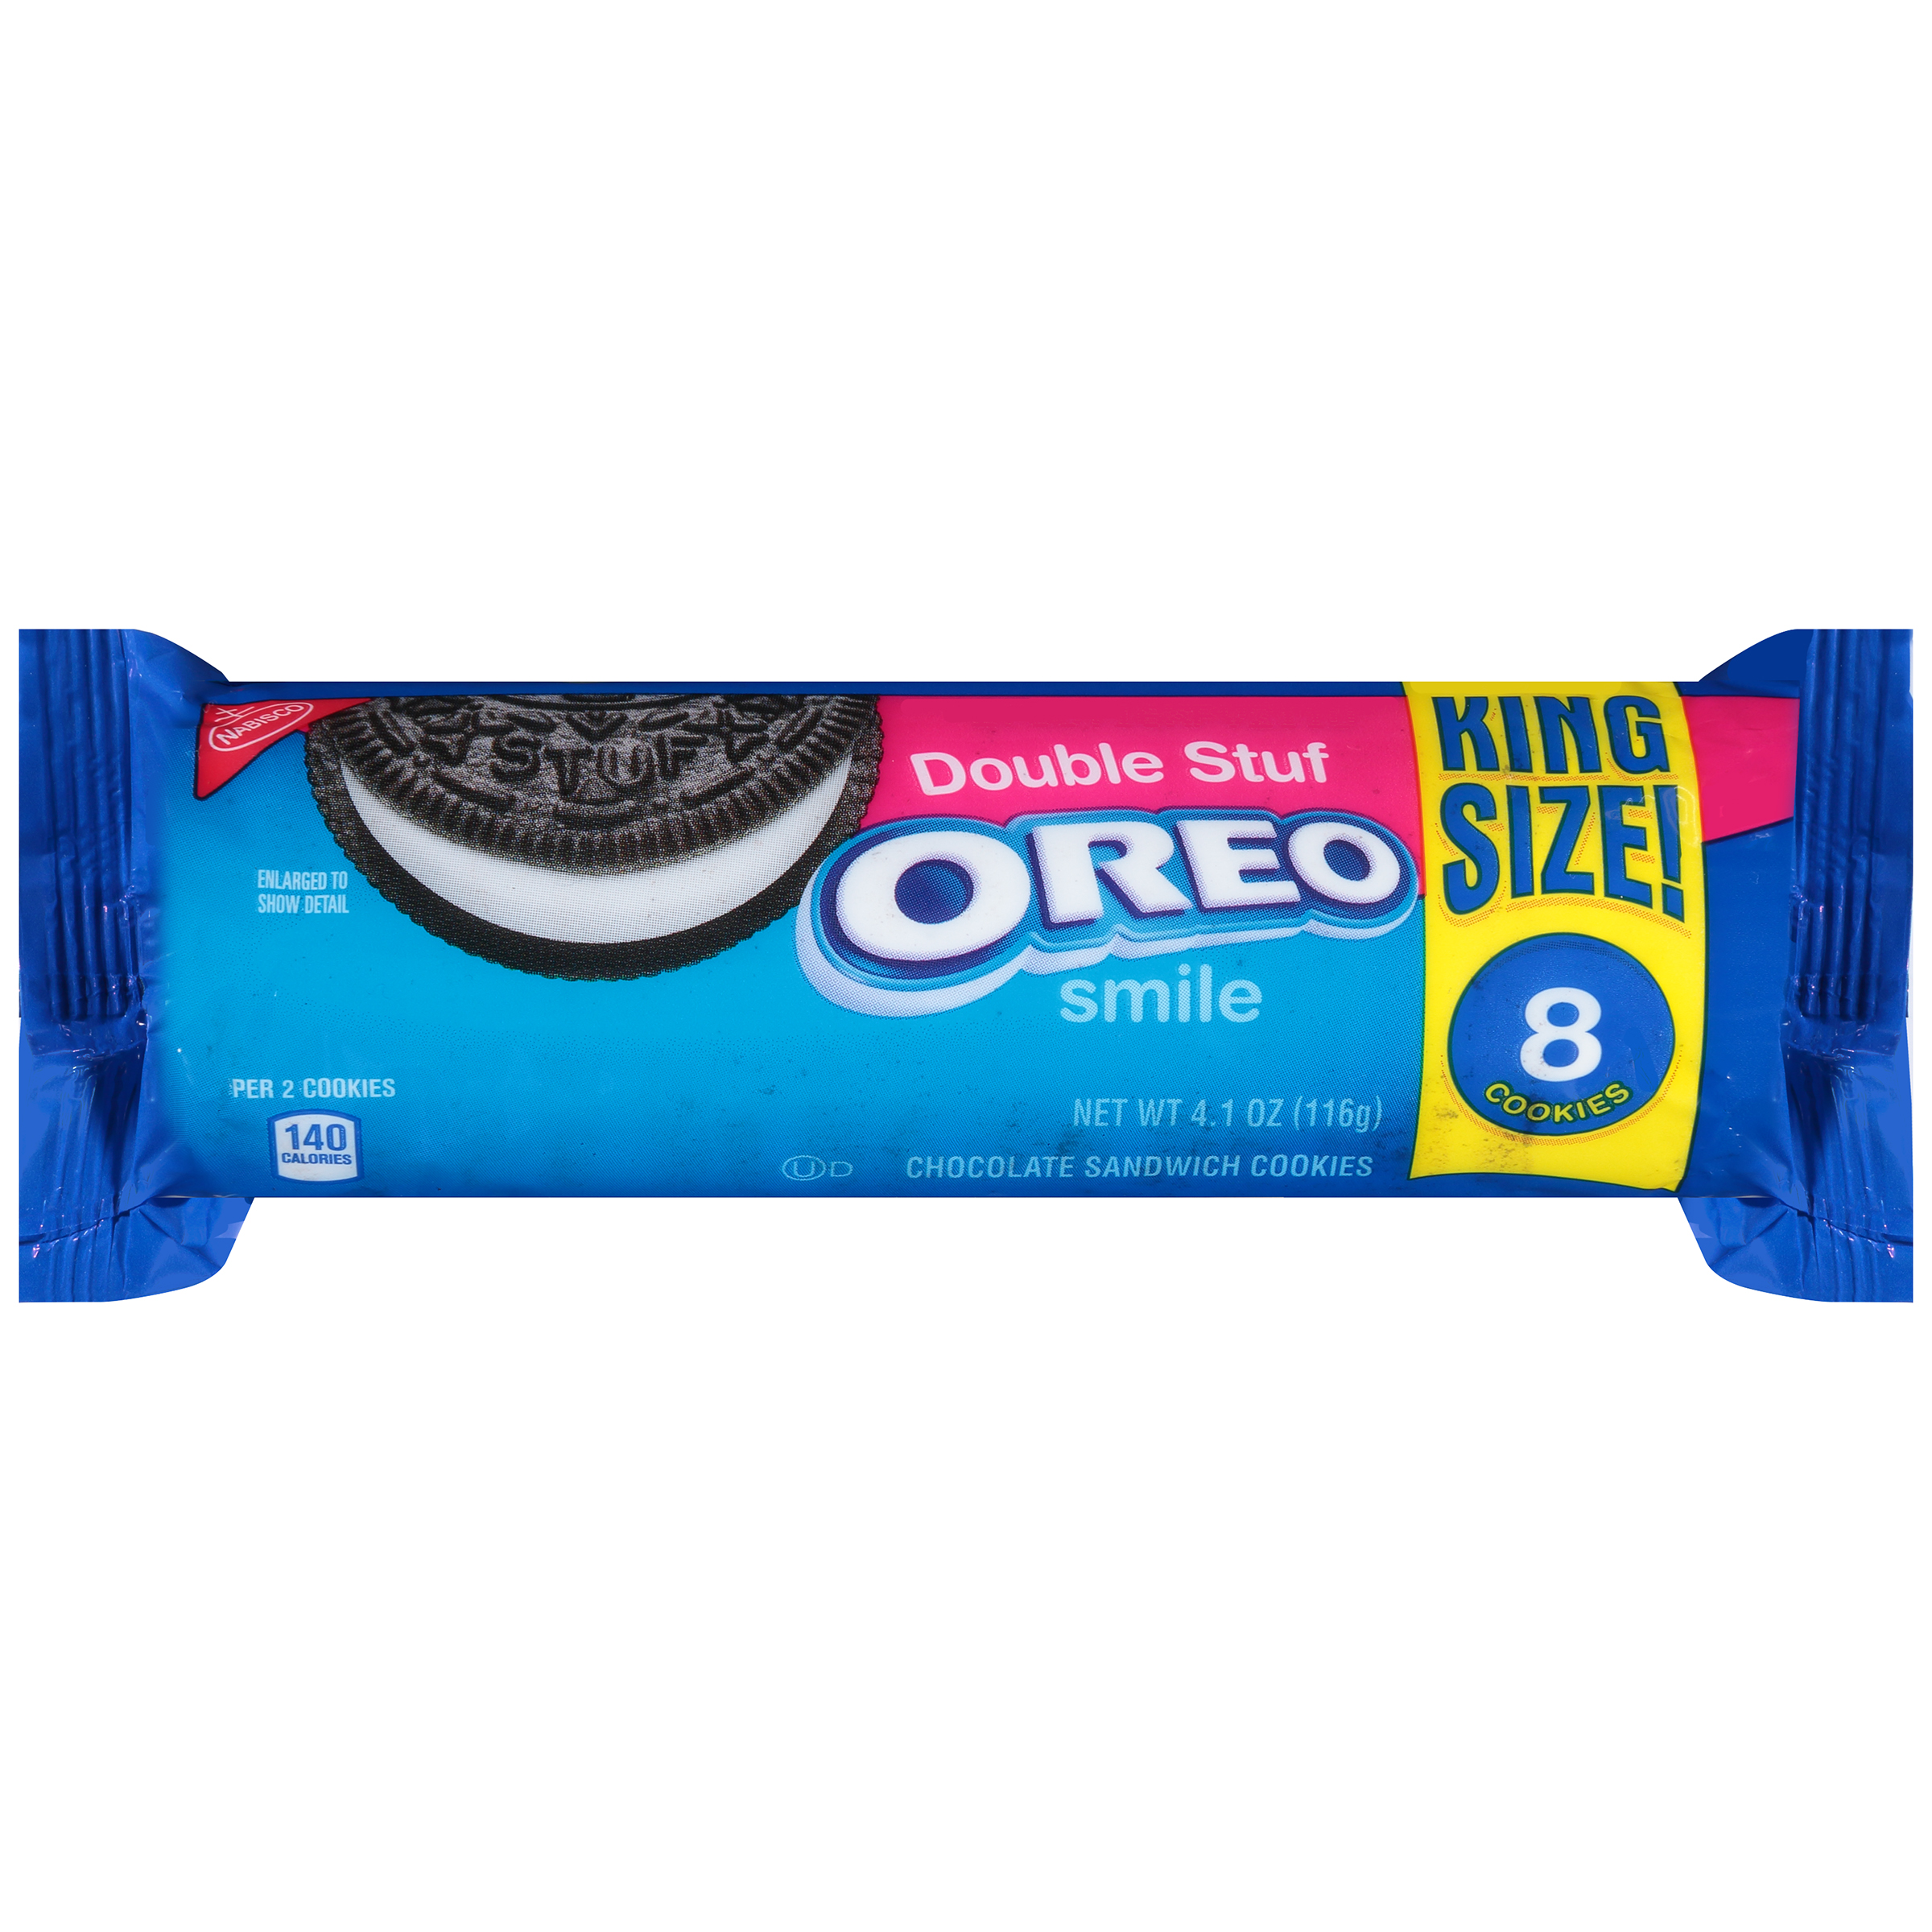 Nabisco Oreo Double Stuf Chocolate Sandwich Cookies, 8 ct, 4 oz